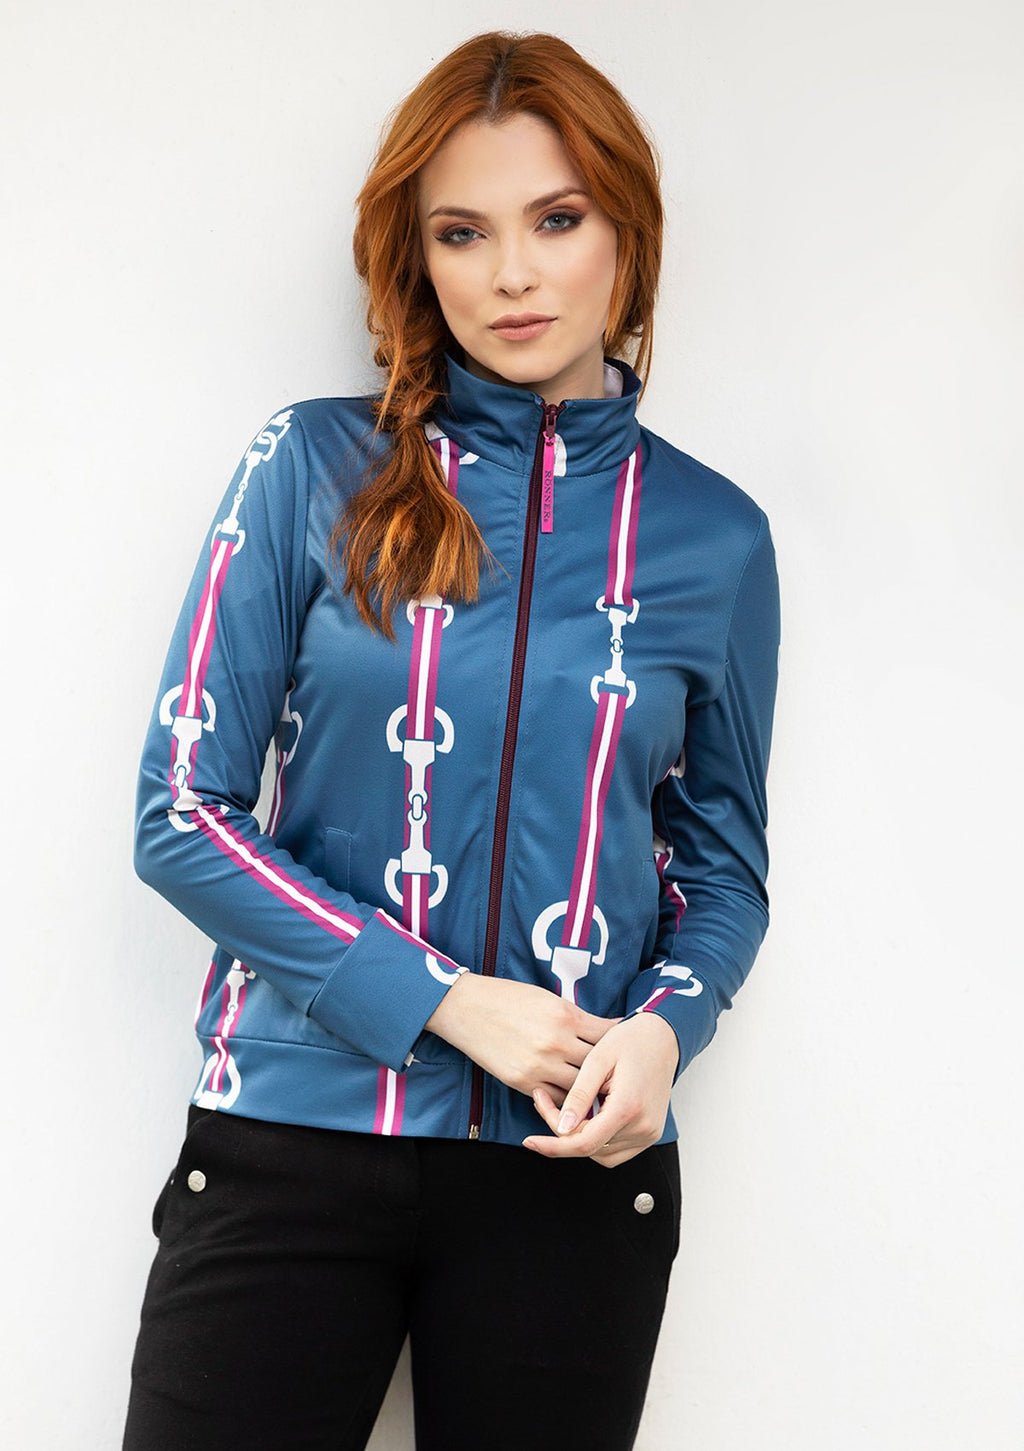 Ronner Zip Jacket - Stallion - The Dressage Store